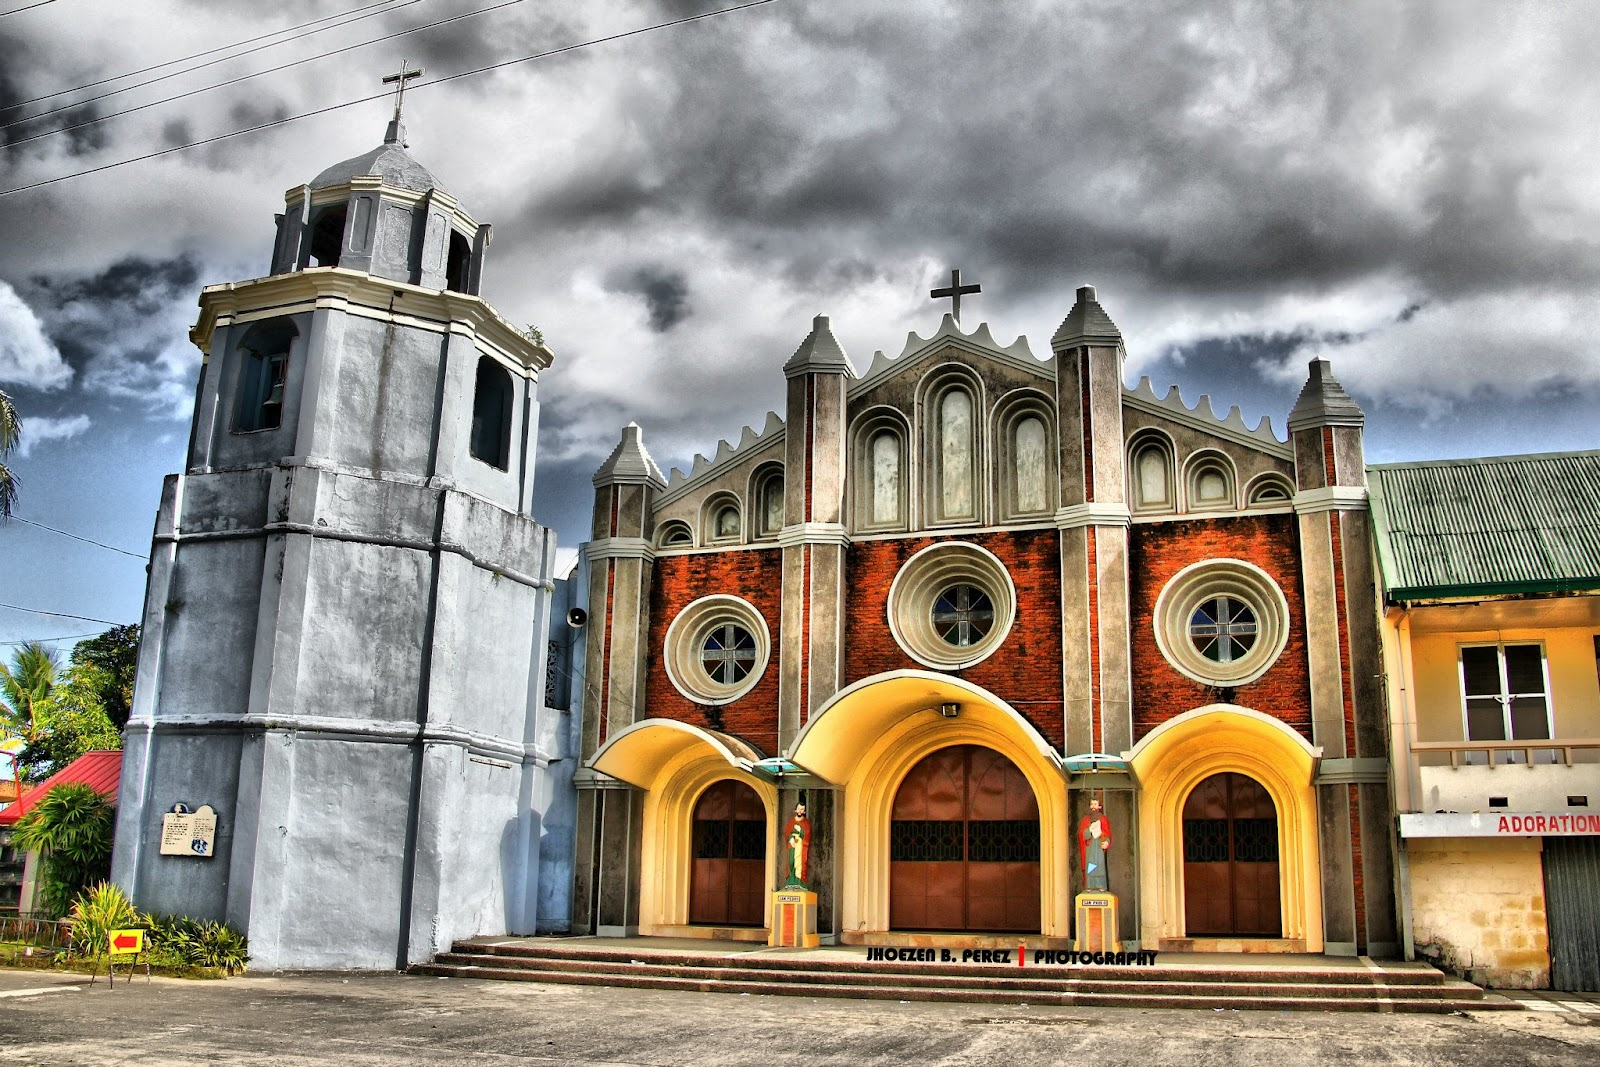 Polangui Church in Polangui, Albay